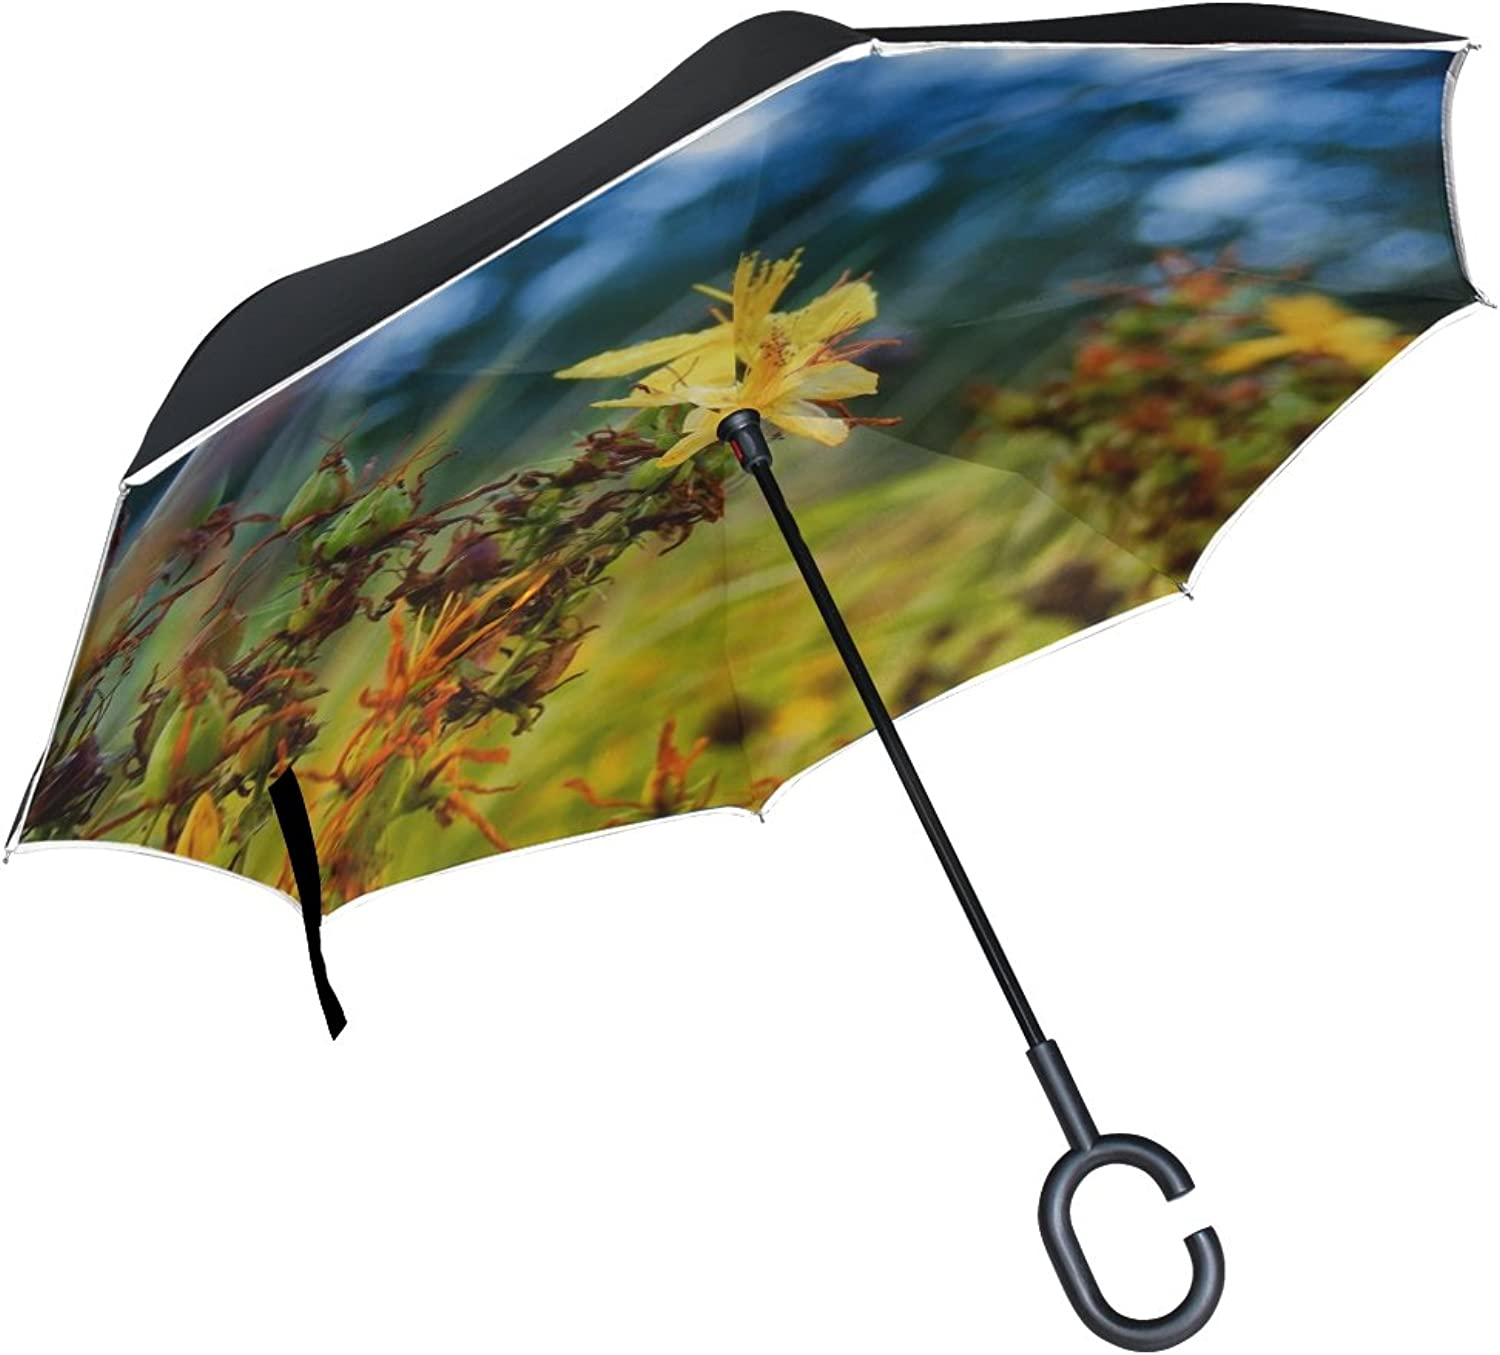 Double Layer Ingreened Tutsan Vulnerary Plants Grass Field Flora Meadow Umbrellas Reverse Folding Umbrella Windproof Uv Predection Big Straight Umbrella for Car Rain Outdoor with CShaped Handle